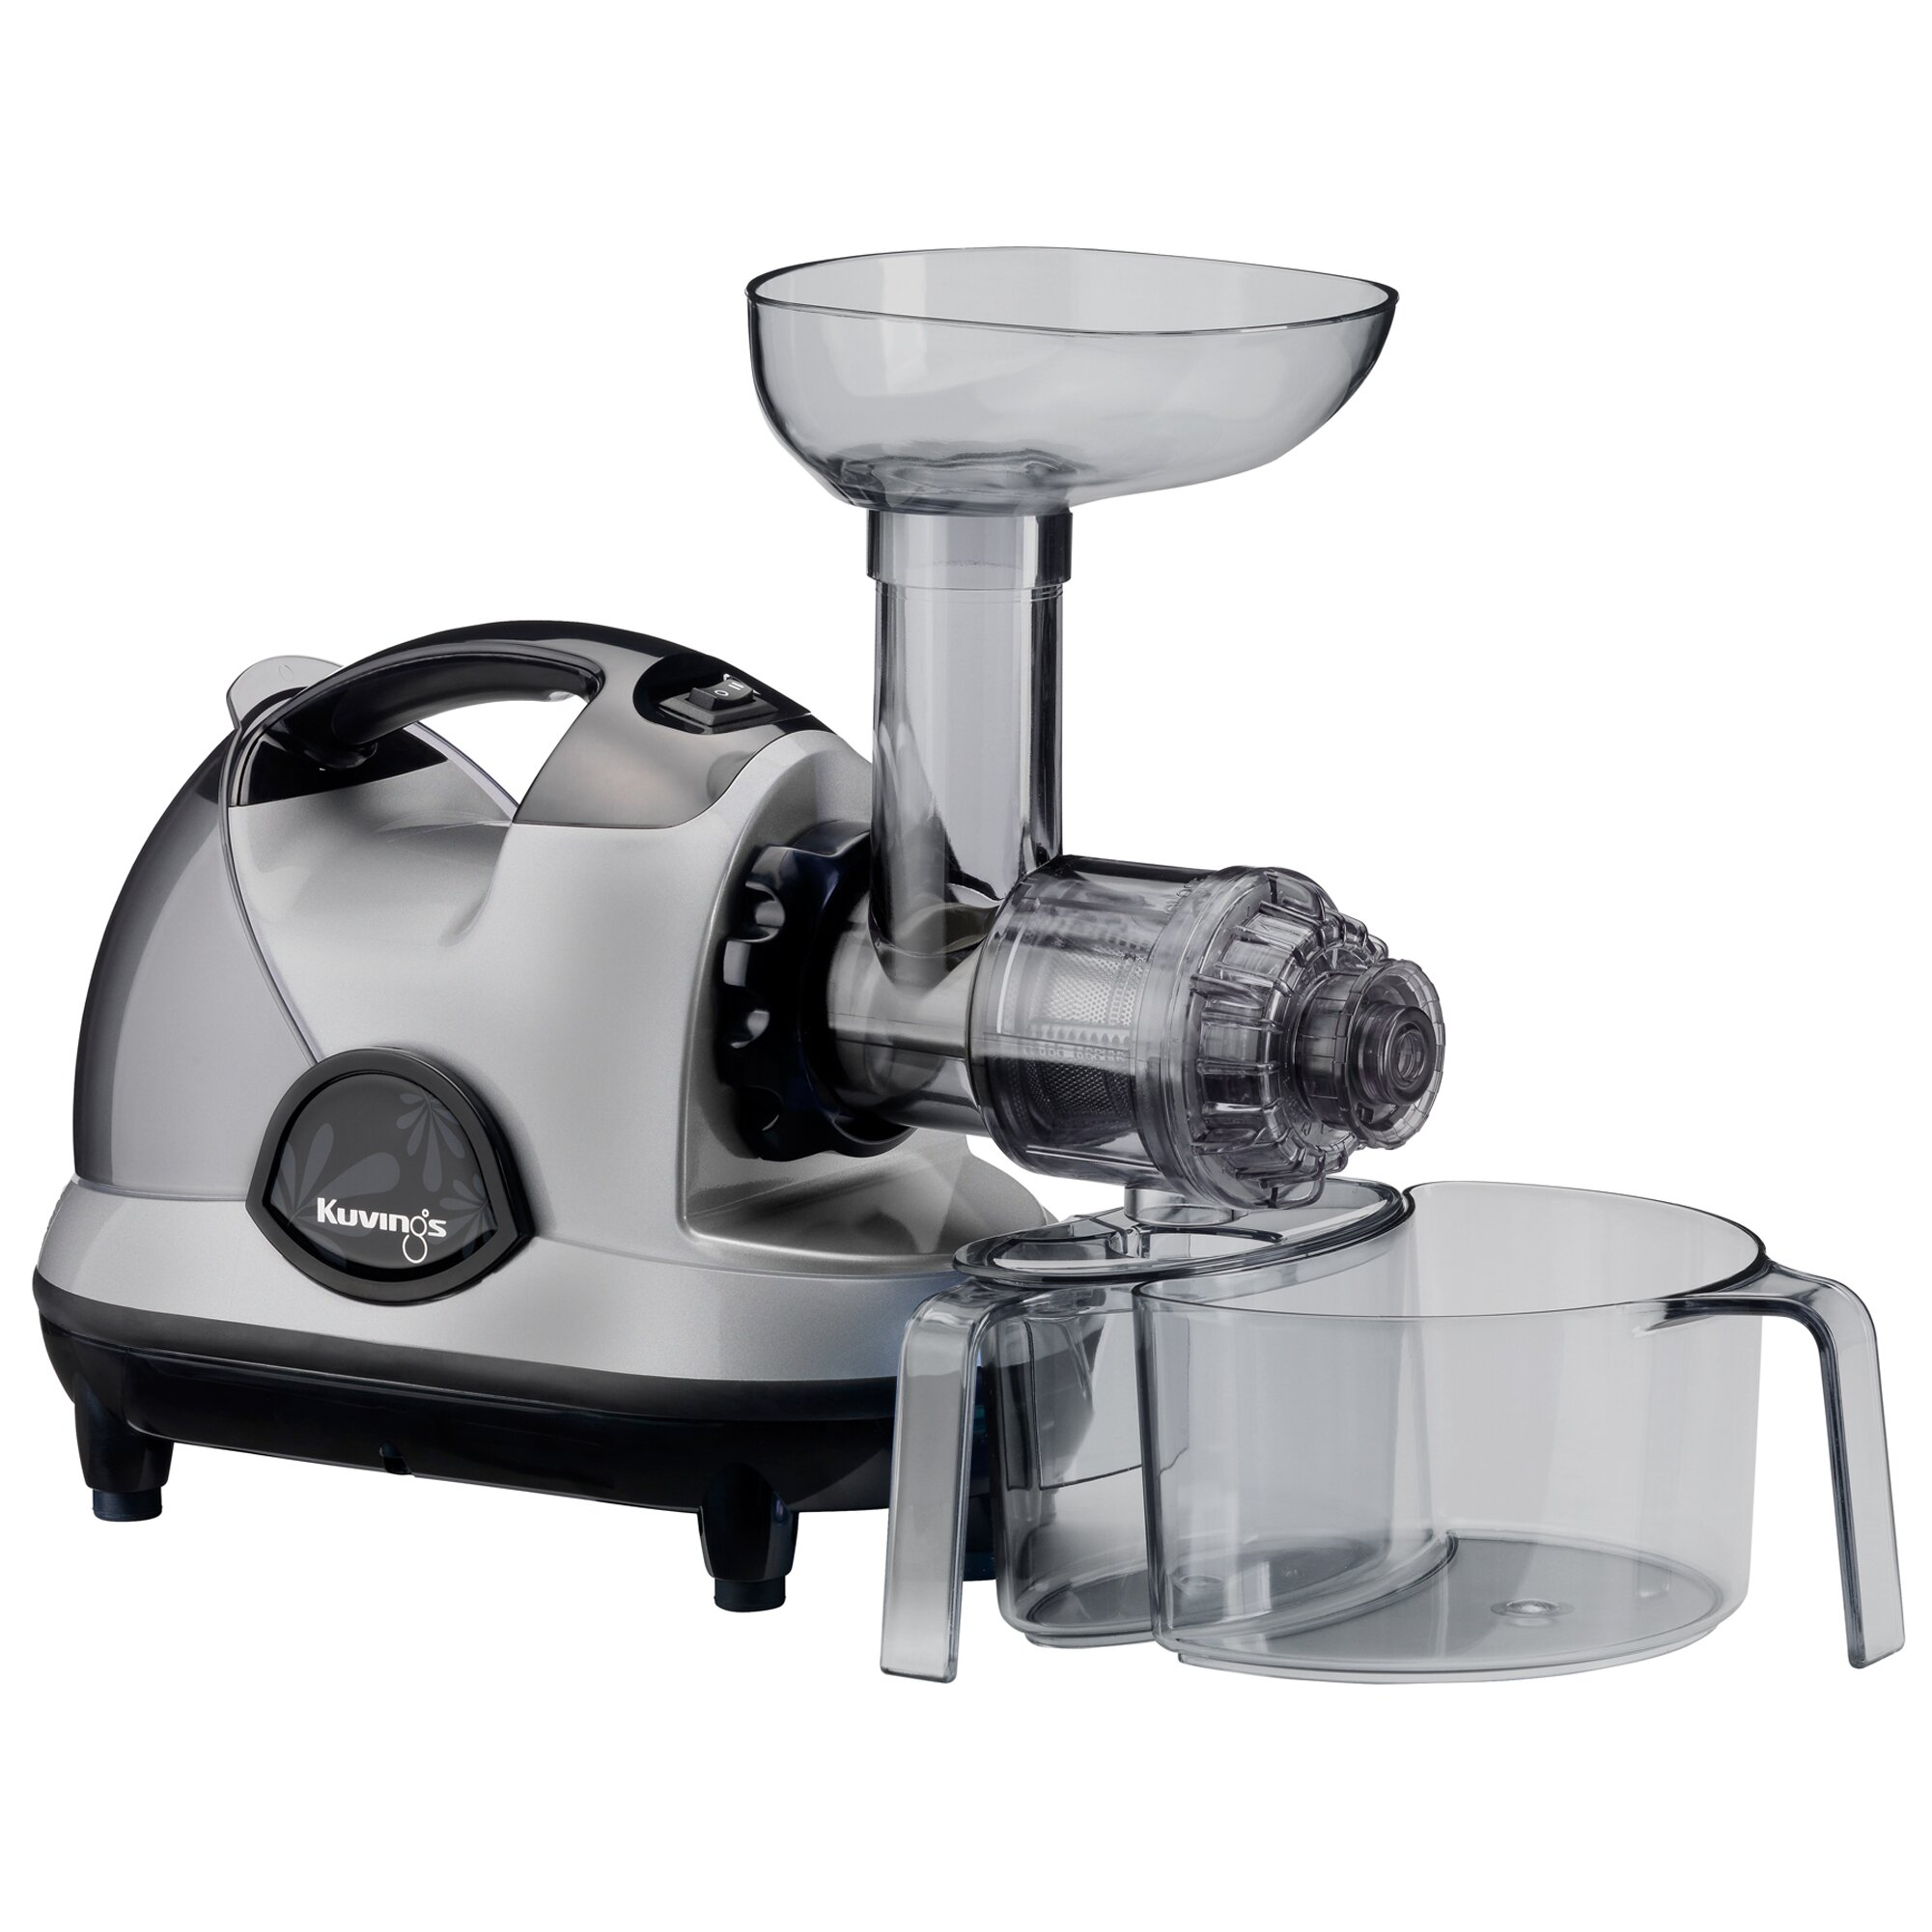 Kitchen Living Slow Juicer Reviews : KUvINGS Multi-Purpose Slow Juicer & Reviews Wayfair